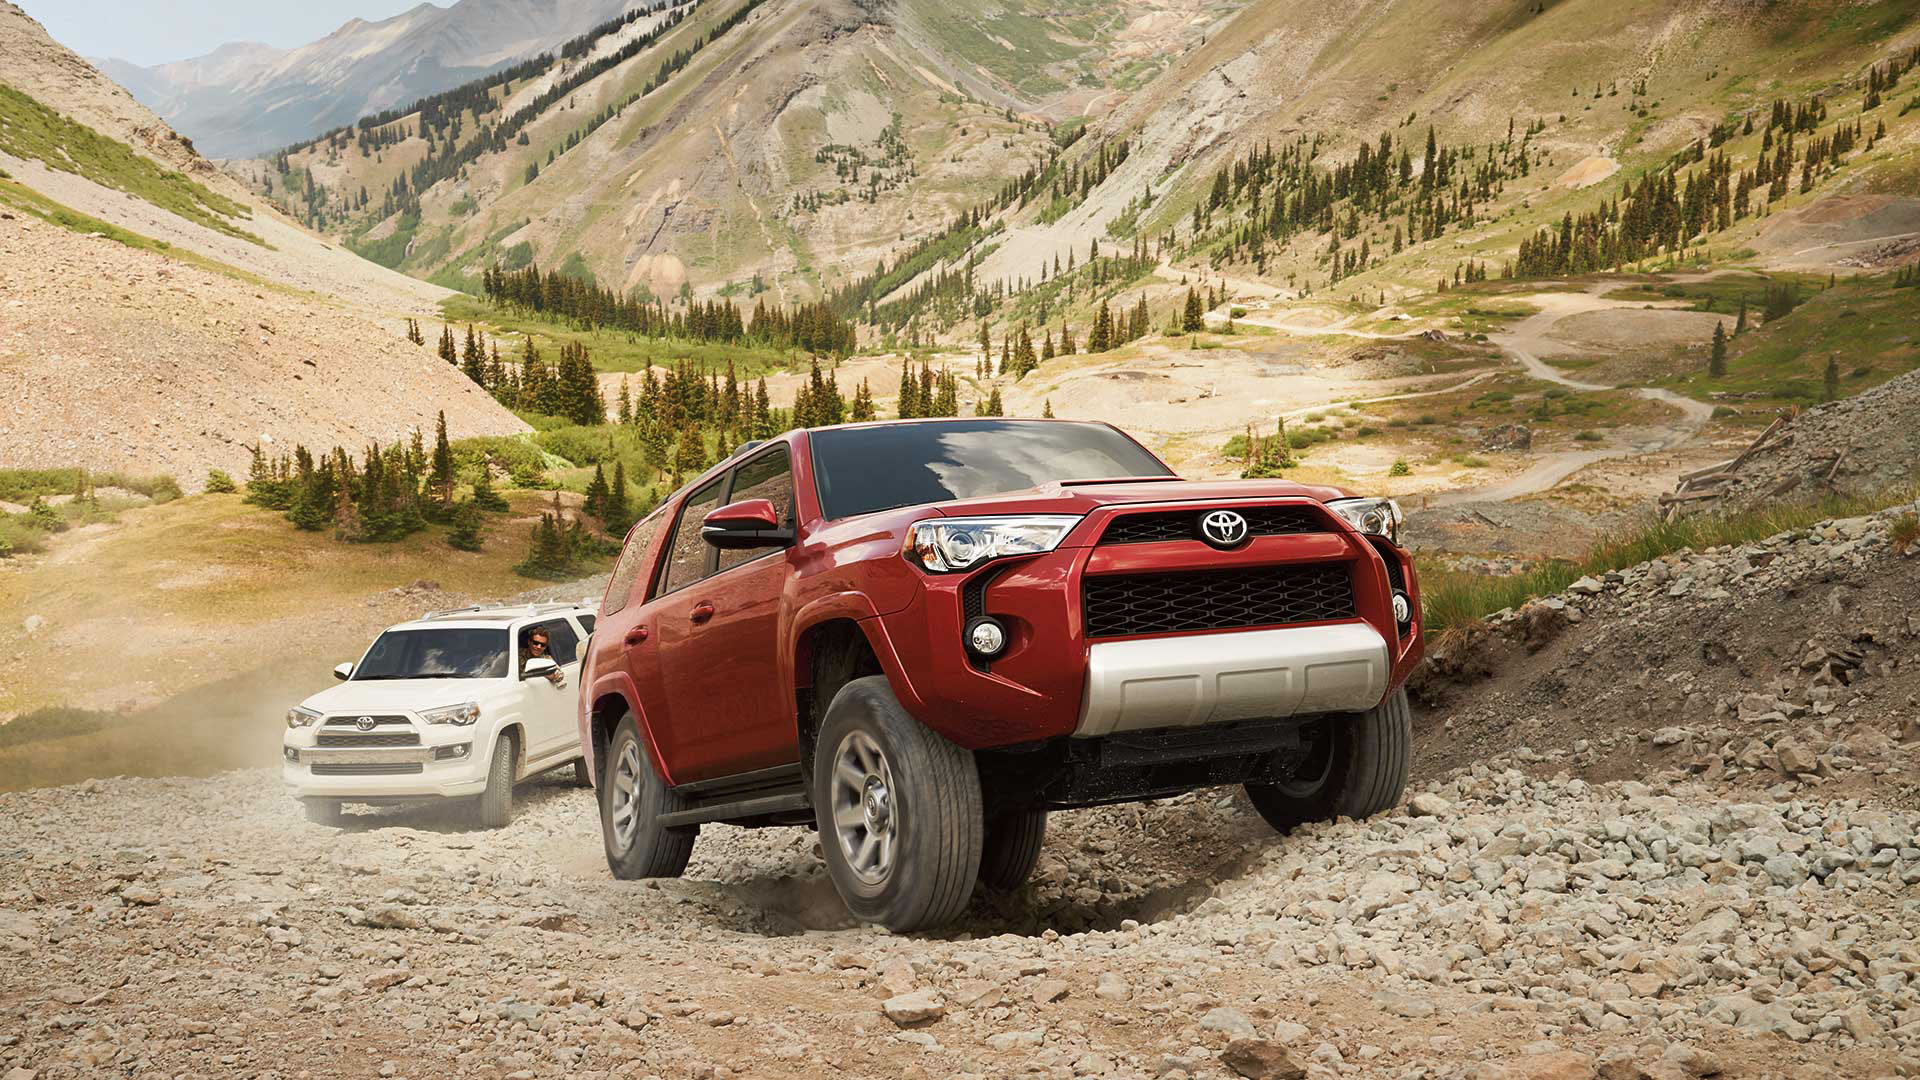 4Runner four wheel drive capabilities Hesser Toyota